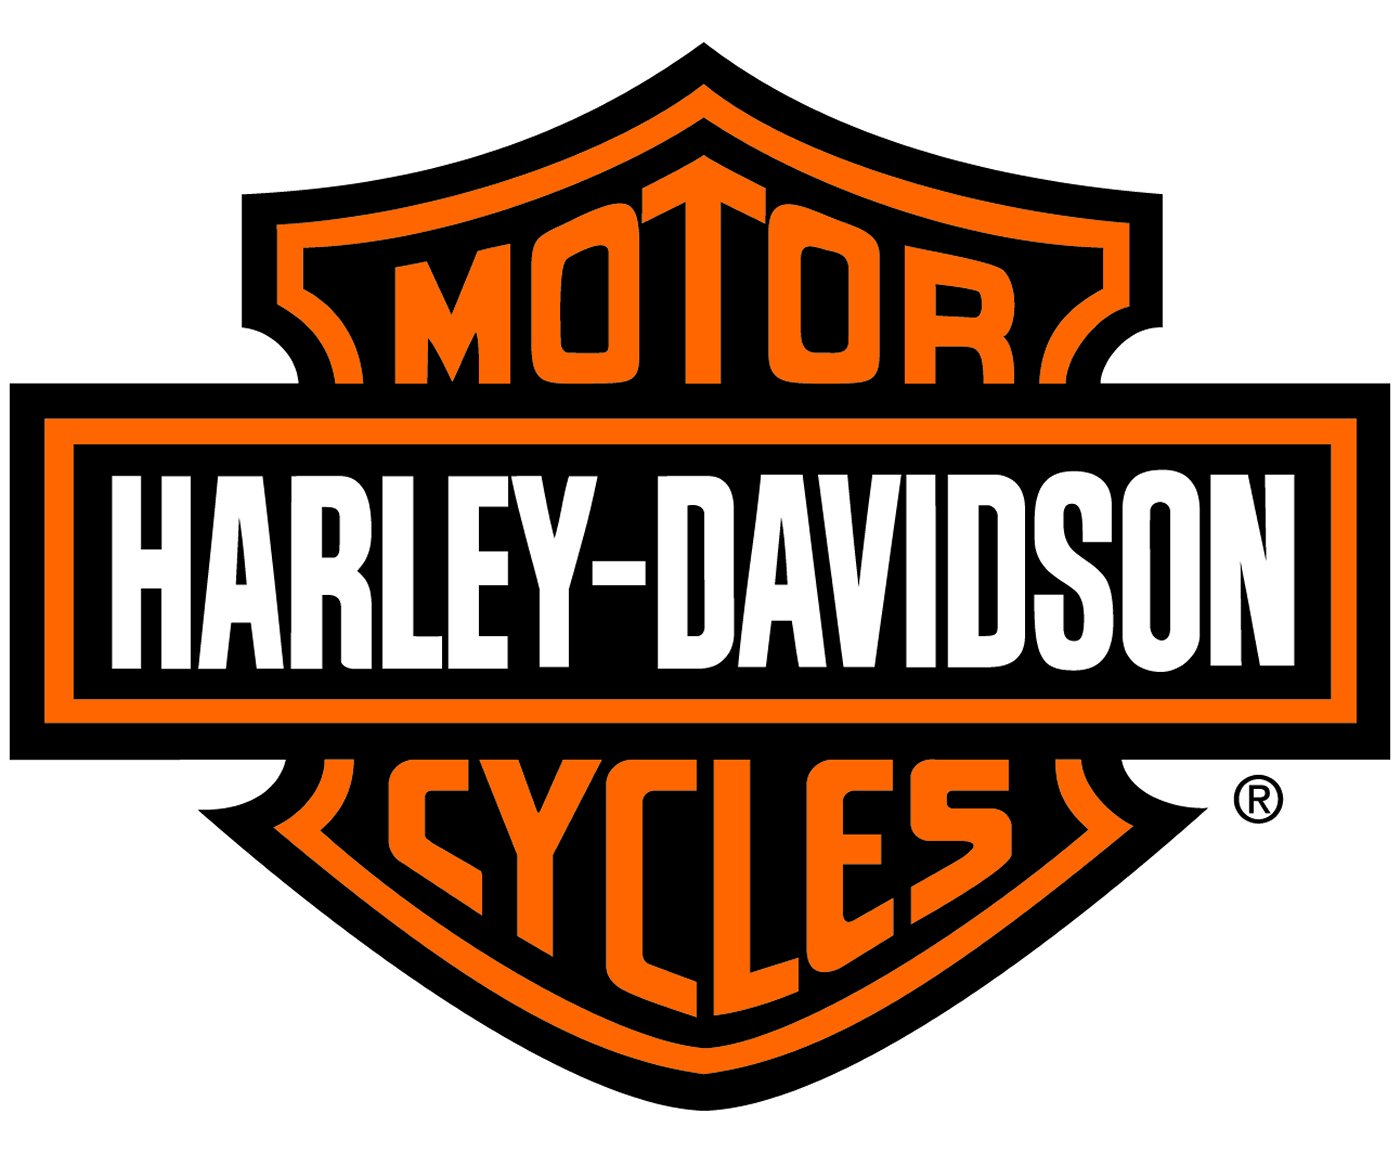 1400x1153 The Harley Davidson Story With Images A OmarKattan Storify